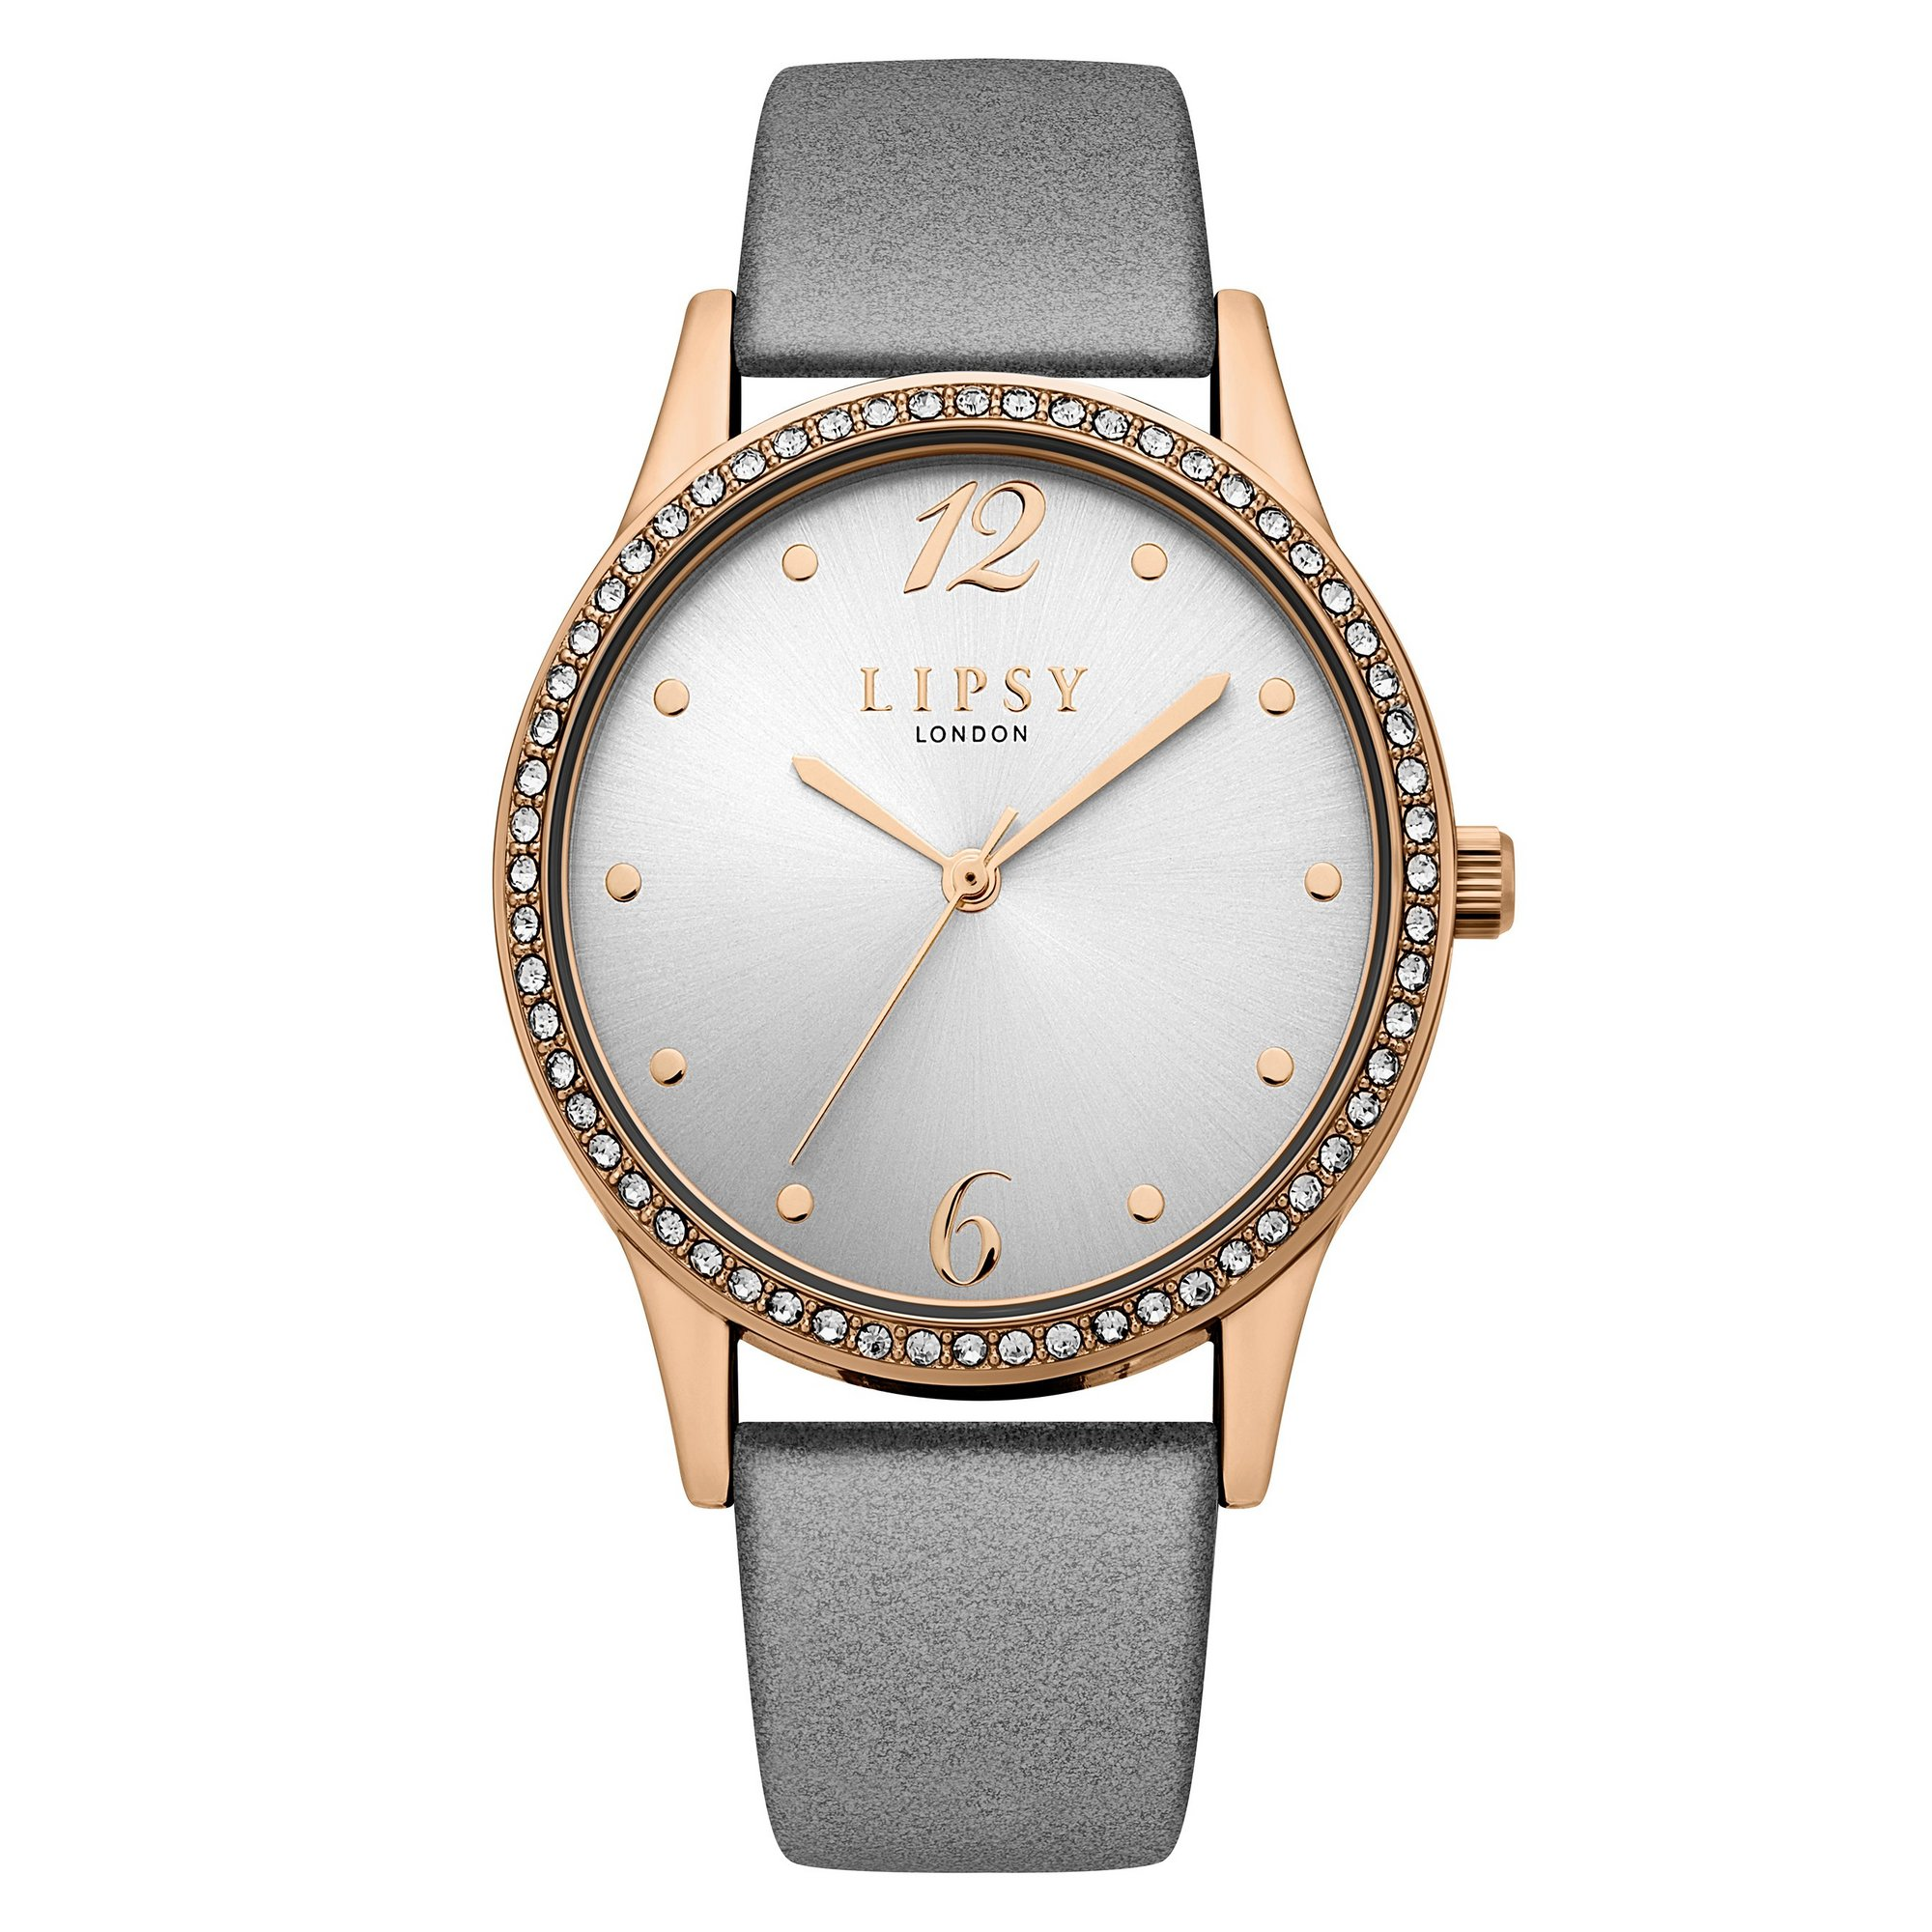 Image of Lipsy Grey Strap Watch with Grey Sunray Dial